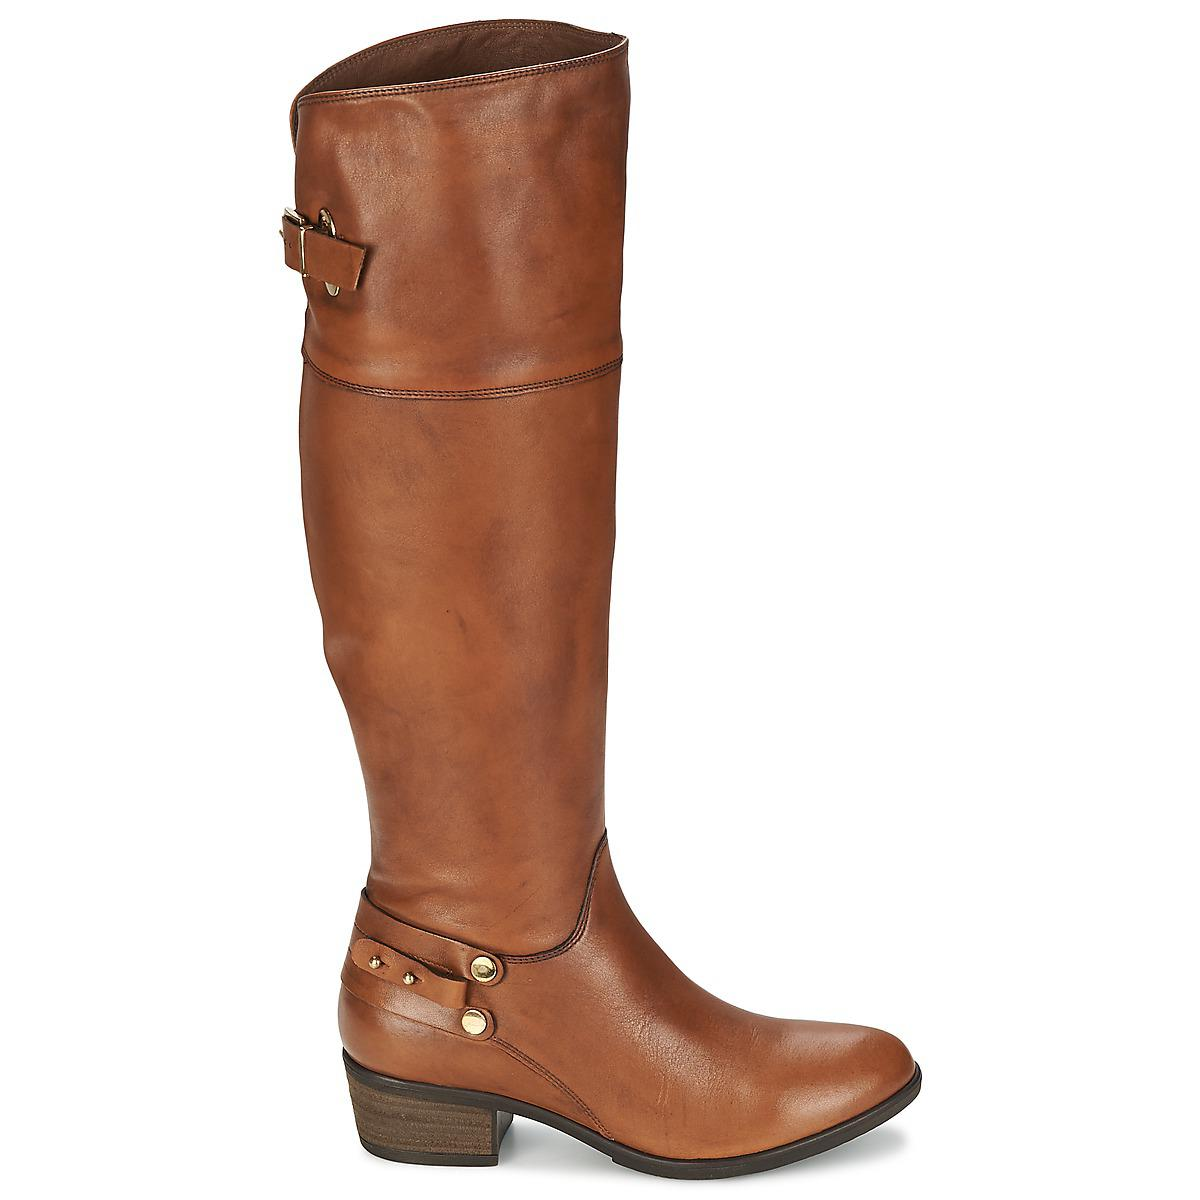 Clarks Leather Lindley Charm Women's High Boots In Brown